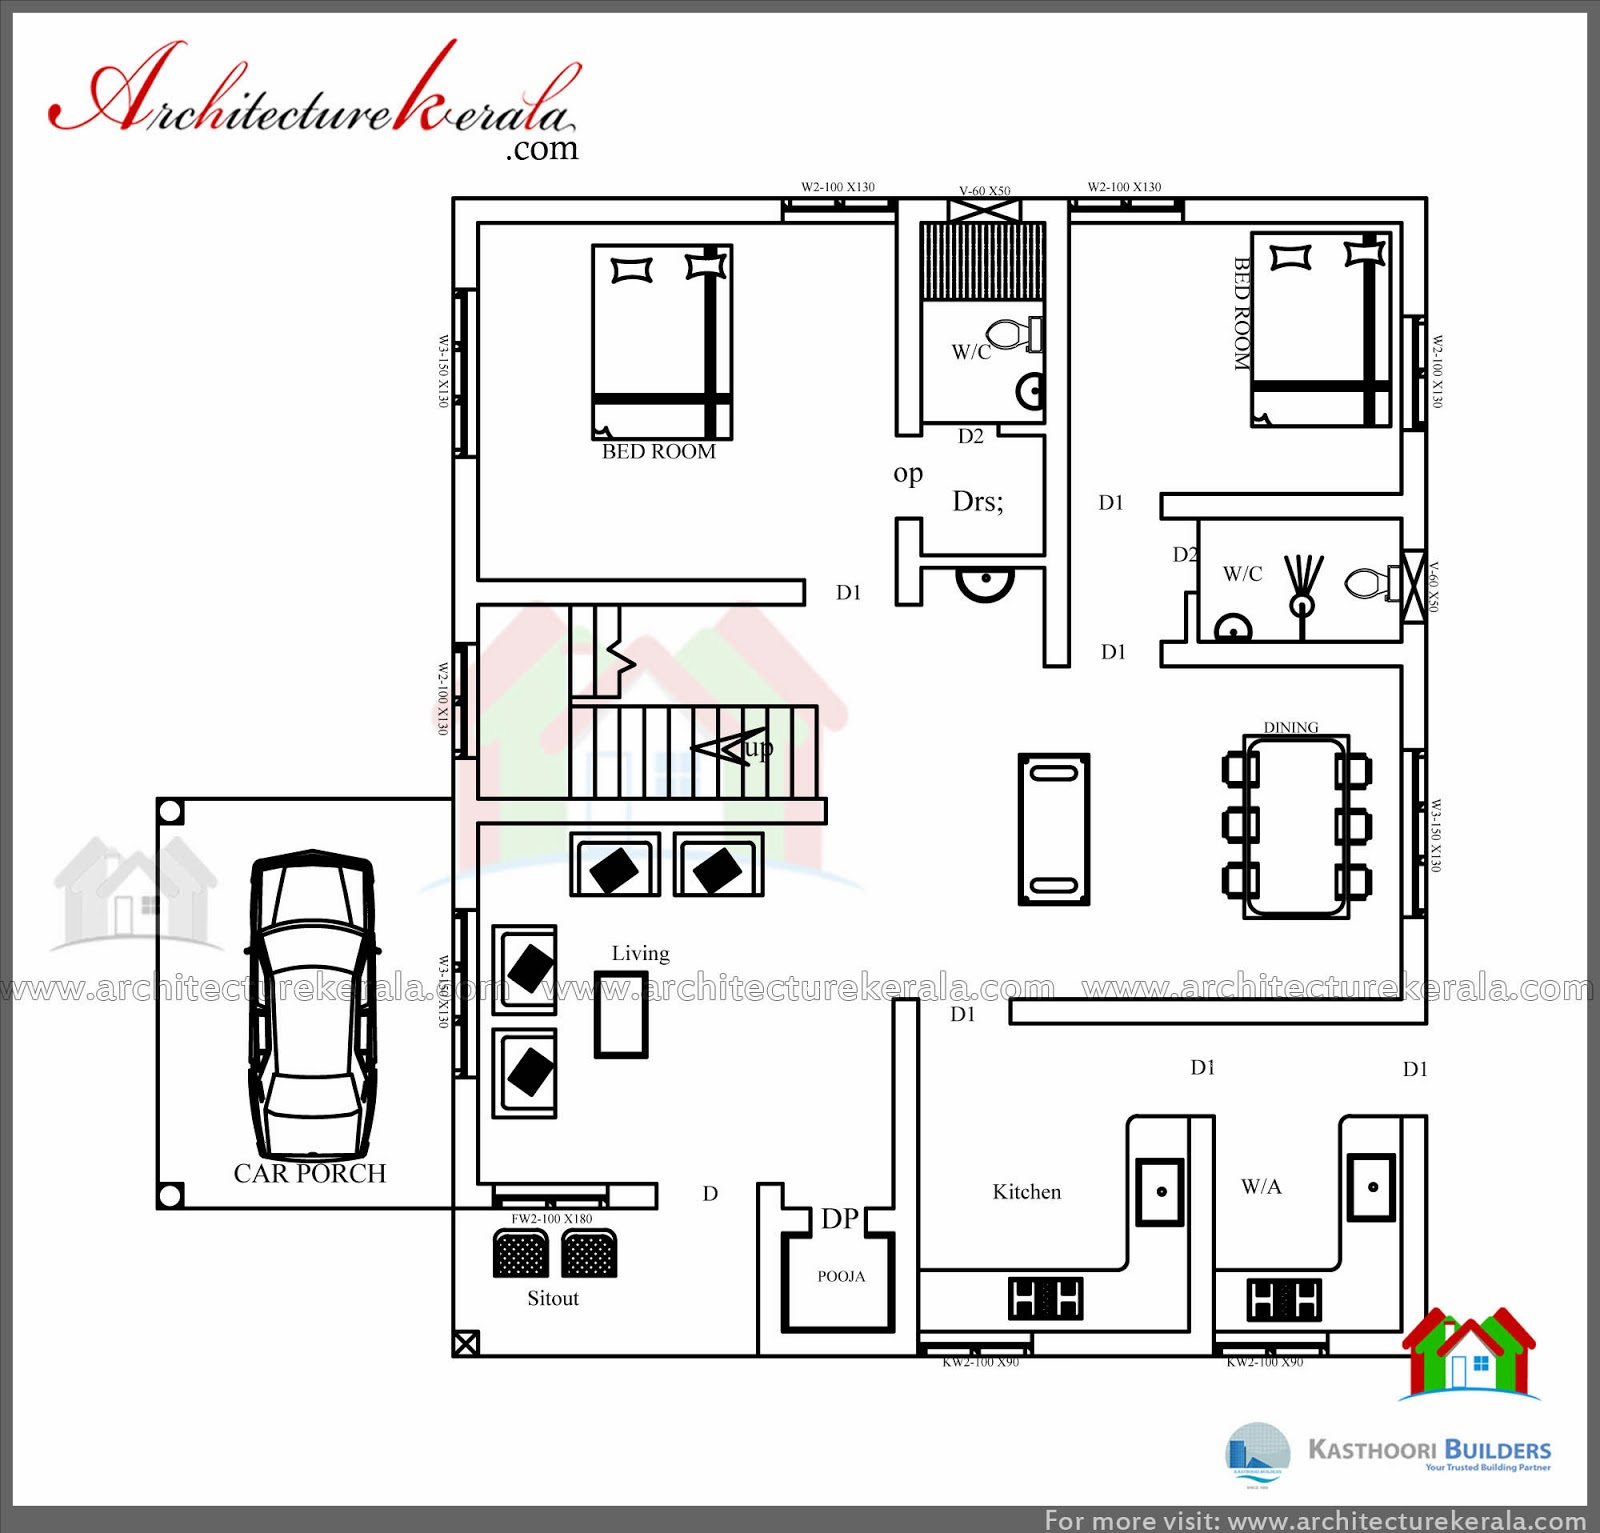 Low cost 3 bedroom kerala house plan with elevation free for Low cost small house plans